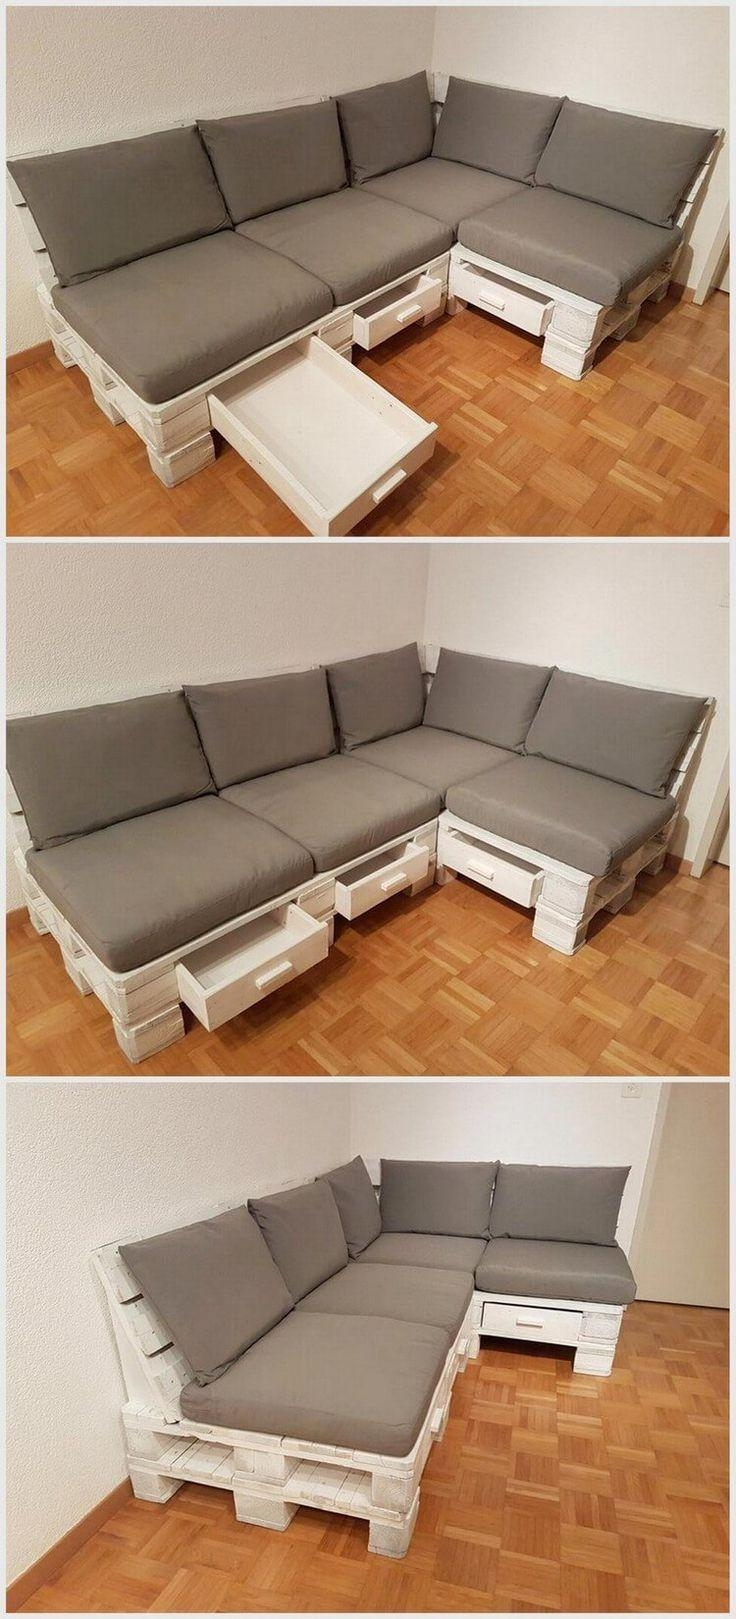 25+ Best Pallet Couch Ideas On Pinterest | Pallet Sofa, Pallet Intended For Pallet Sofas (Image 1 of 20)